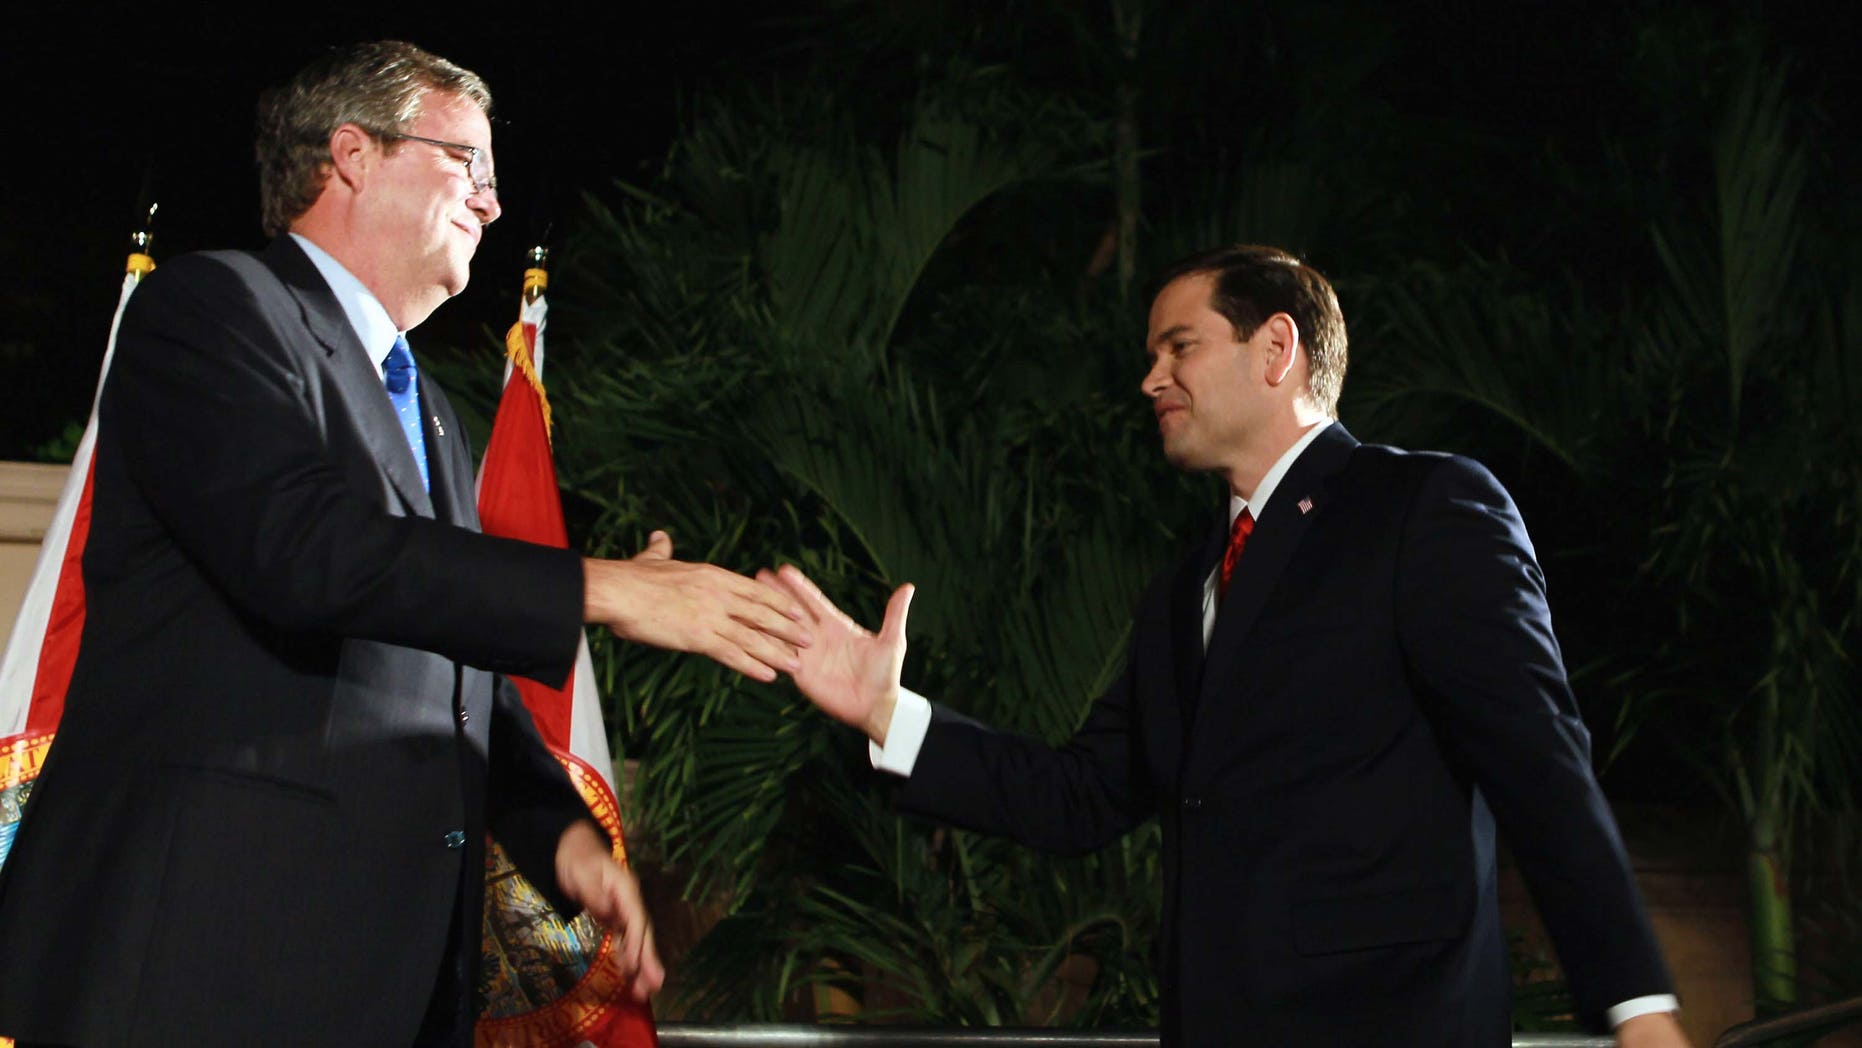 "CORAL GABELS, FL - NOVEMBER 02:  Republican nominee for Florida U.S. Senator Marco Rubio (R) is greeted by former Governor of Florida Jeb Bush during his ""Reclaim America Victory Celebration"" at the Biltmore Hotel on November 2, 2010 in Coral Gables, Florida. Results show that Rubio has clinched the Florida Senate seat against his opponents, Independent candidate and Florida Gov. Charlie Crist and Democratic candidate Rep. Kendrick Meek (D-FL).  (Photo by Joe Raedle/Getty Images) *** Local Caption *** Marco Rubio;Jeb Bush"